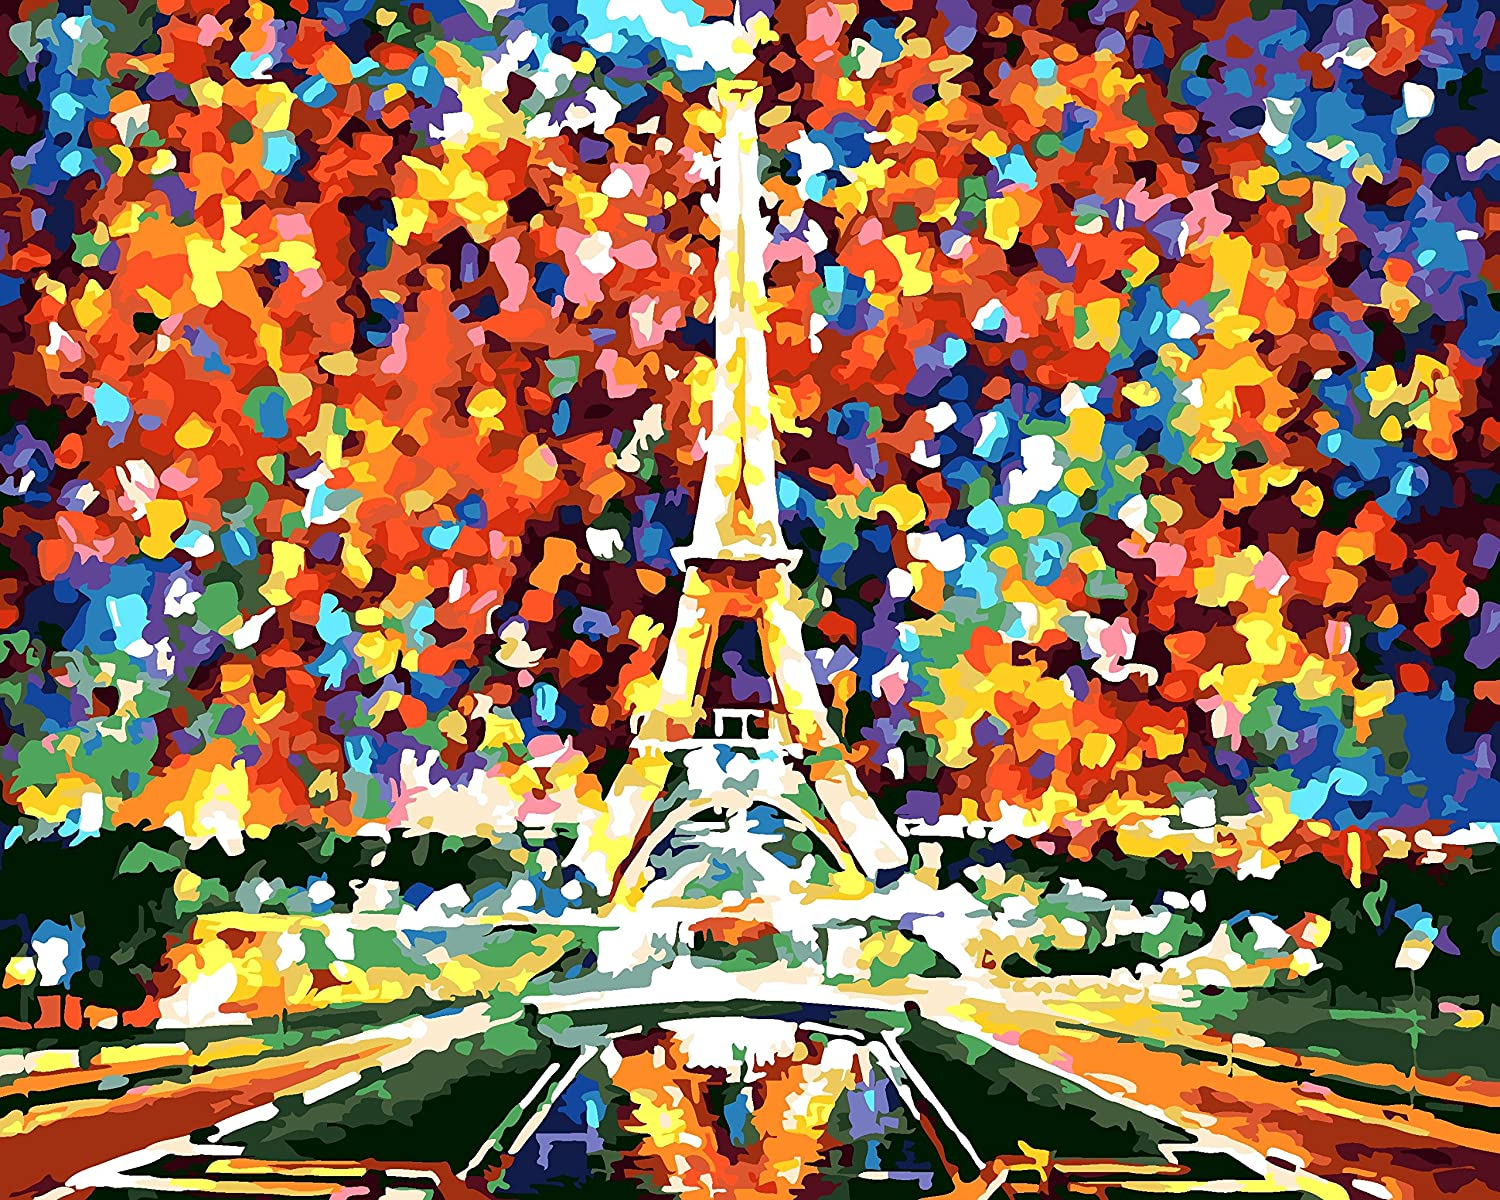 DIY Pre-Printed Canvas Oil Painting Gift for Adults Kids Paint by Number Kits With Wooden Frame for Home Decor - Autumn 16*20 inch NCFDBL